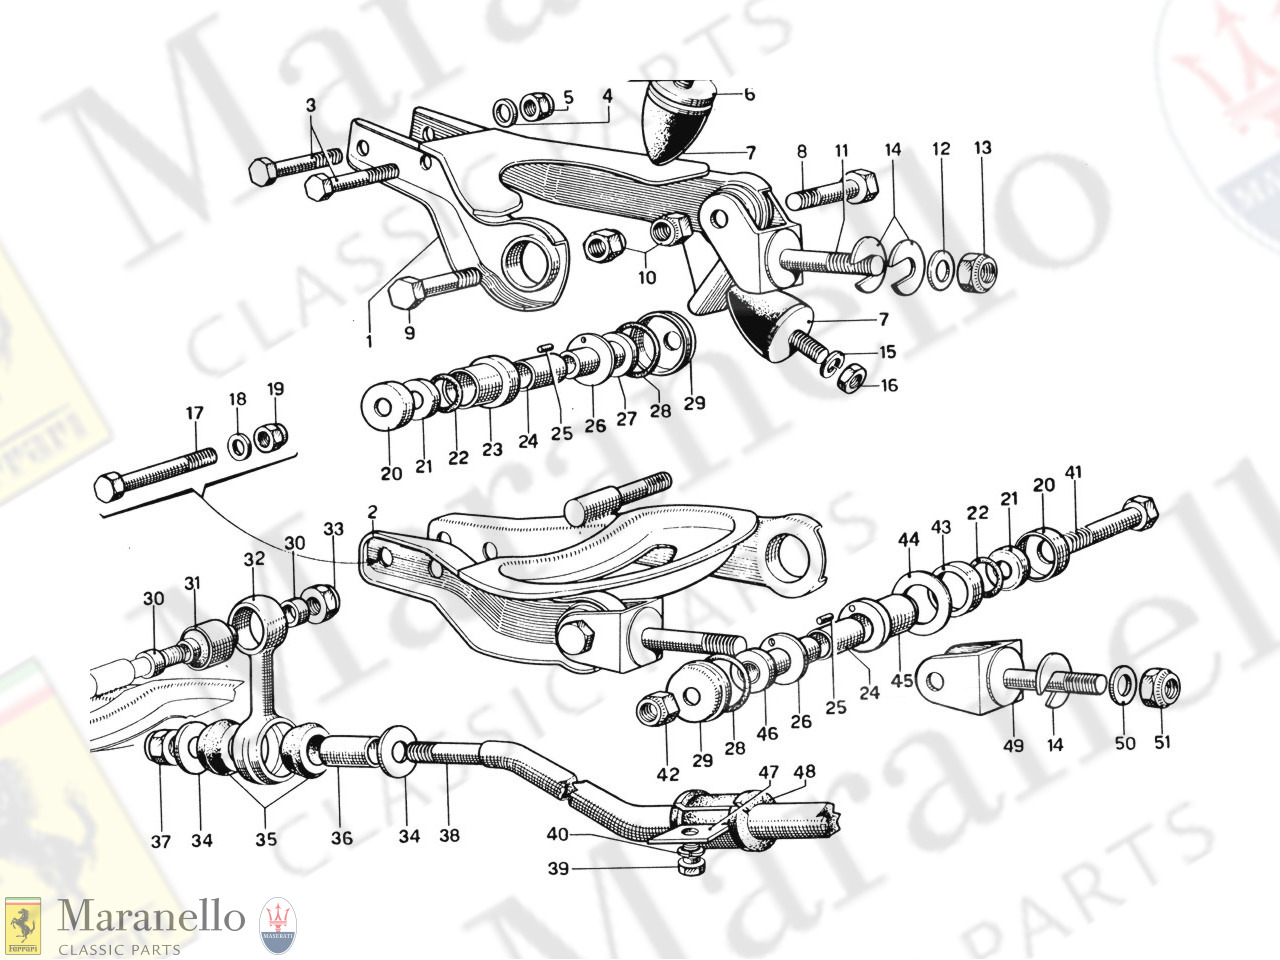 024 - Front Suspension - Wishbones